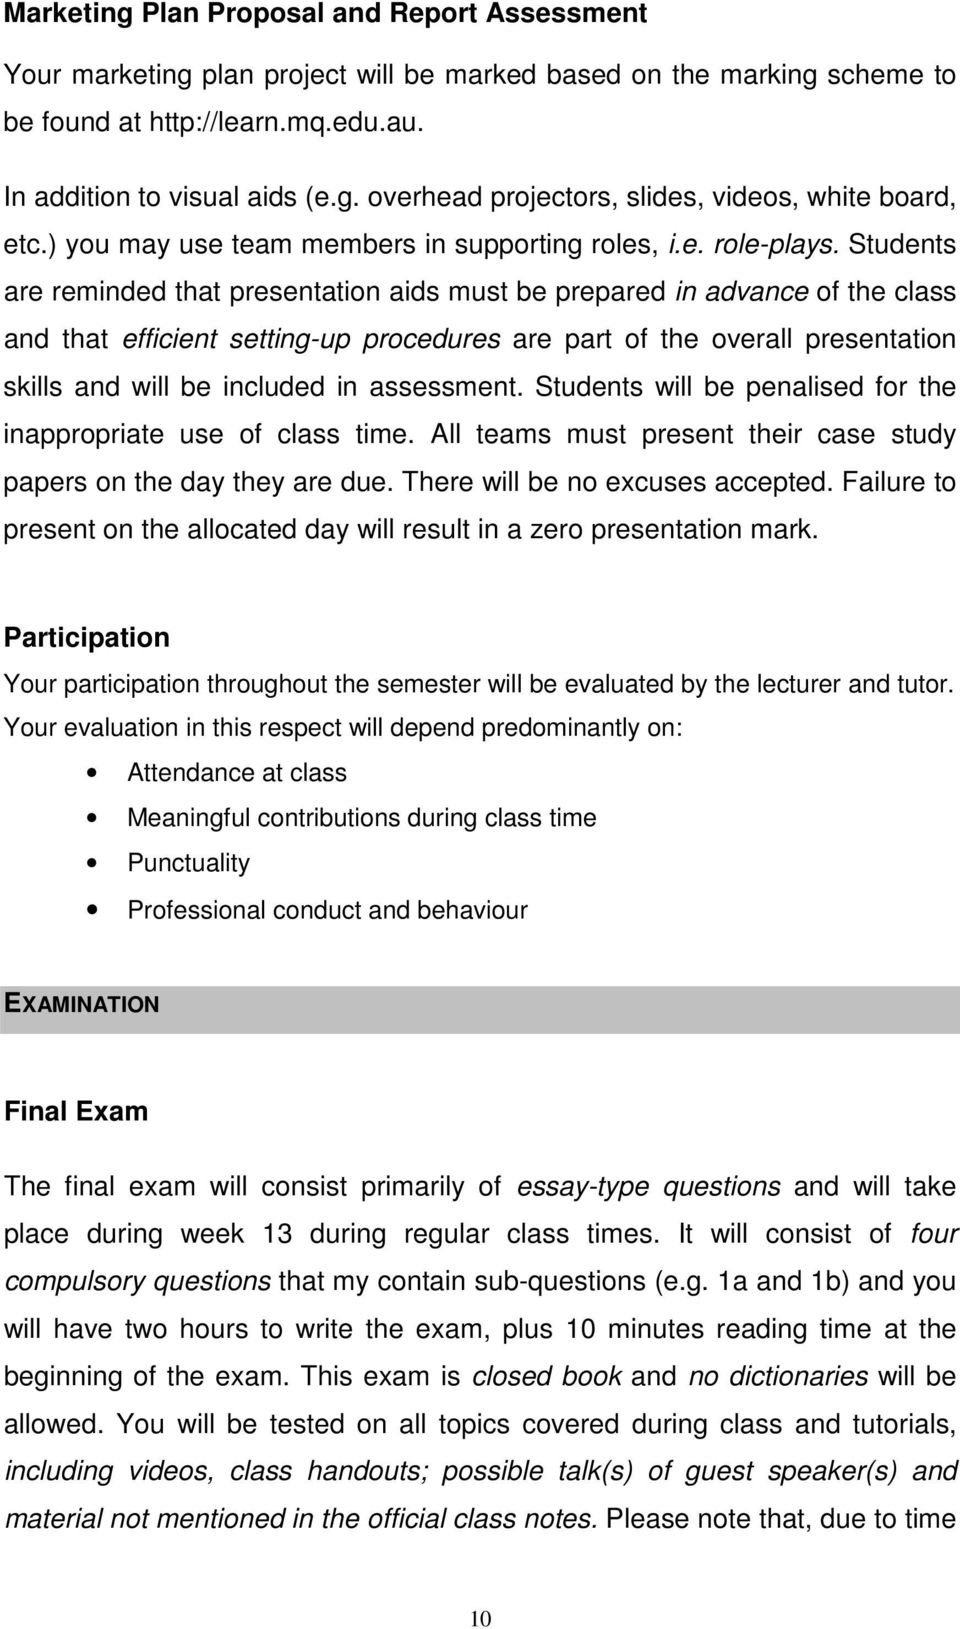 Students are reminded that presentation aids must be prepared in advance of the class and that efficient setting-up procedures are part of the overall presentation skills and will be included in